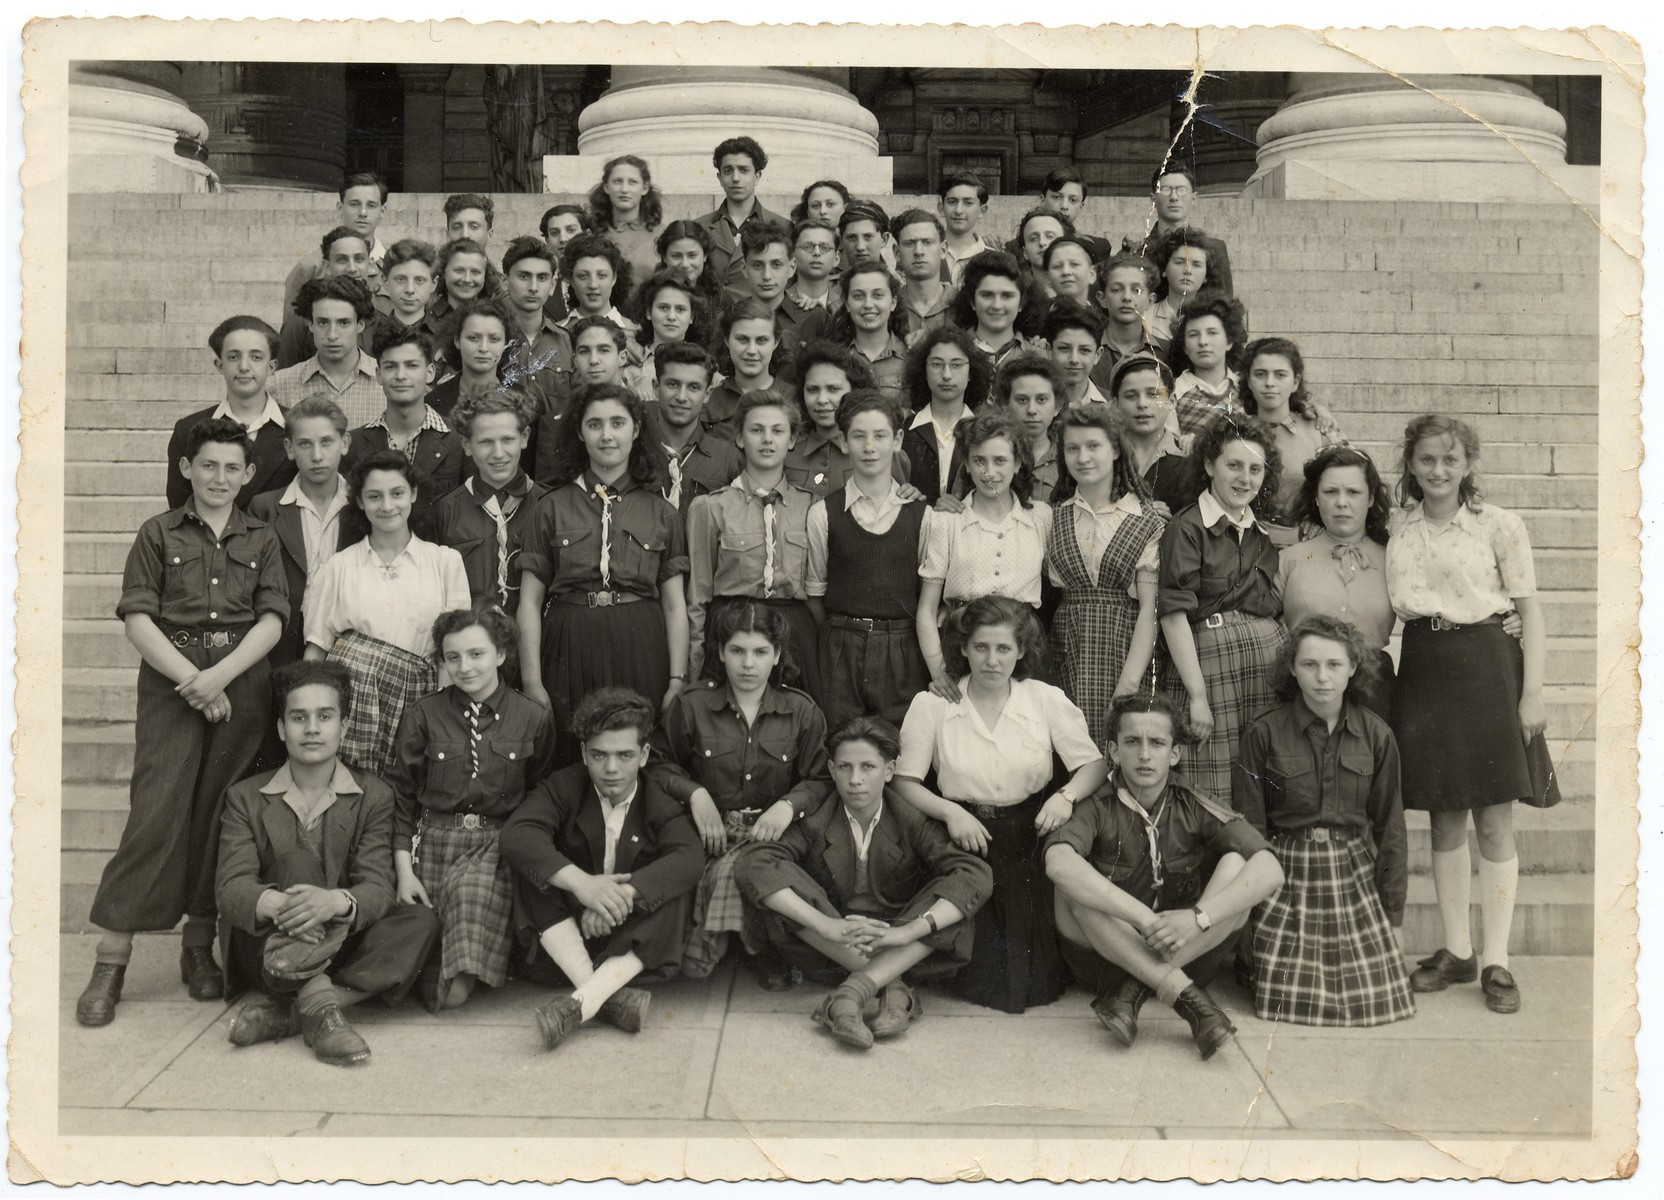 Group portrait of members of the Gordonia Zionist youth movement on the steps of the Palais de Justice in Brussels.   Esther Baczynski, the donor's wife, was the leader of this group and is pictured standing third from right in the third row from the bottom.